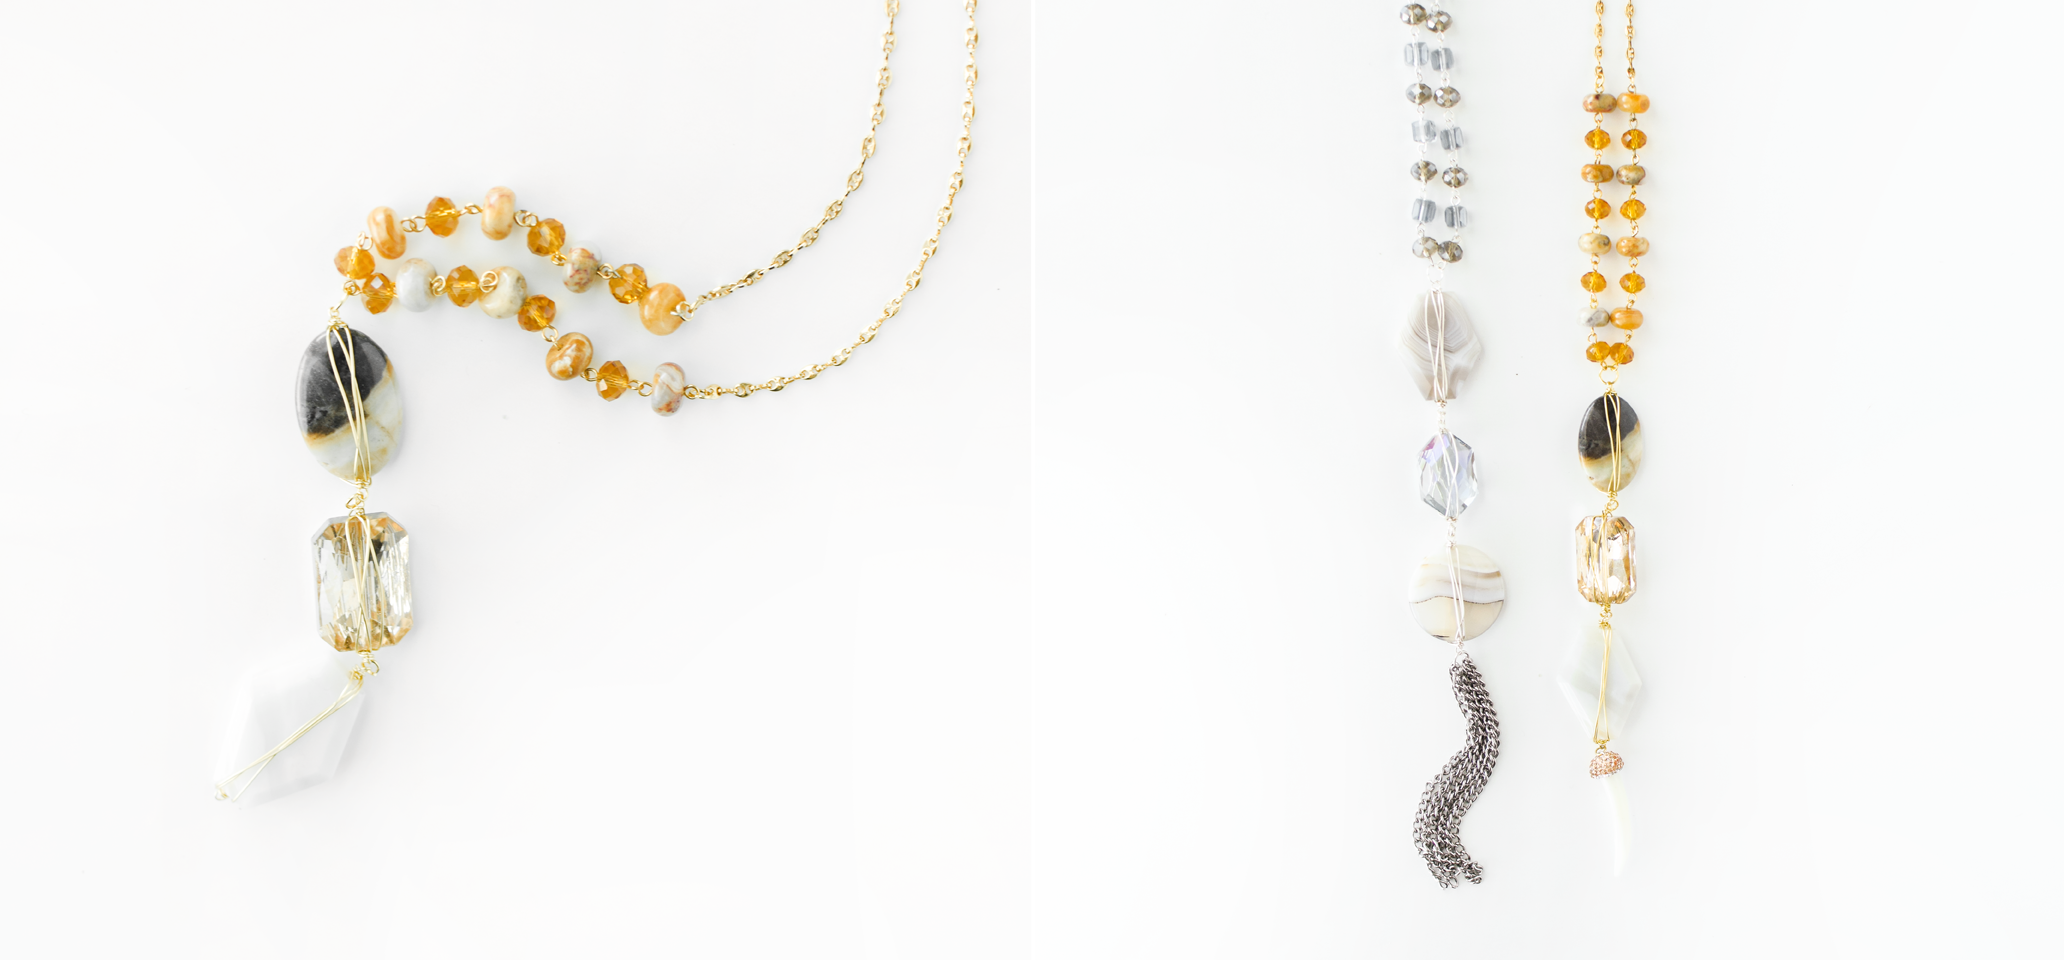 DIY Wired Stones Necklaces by Quiet Lion Creations